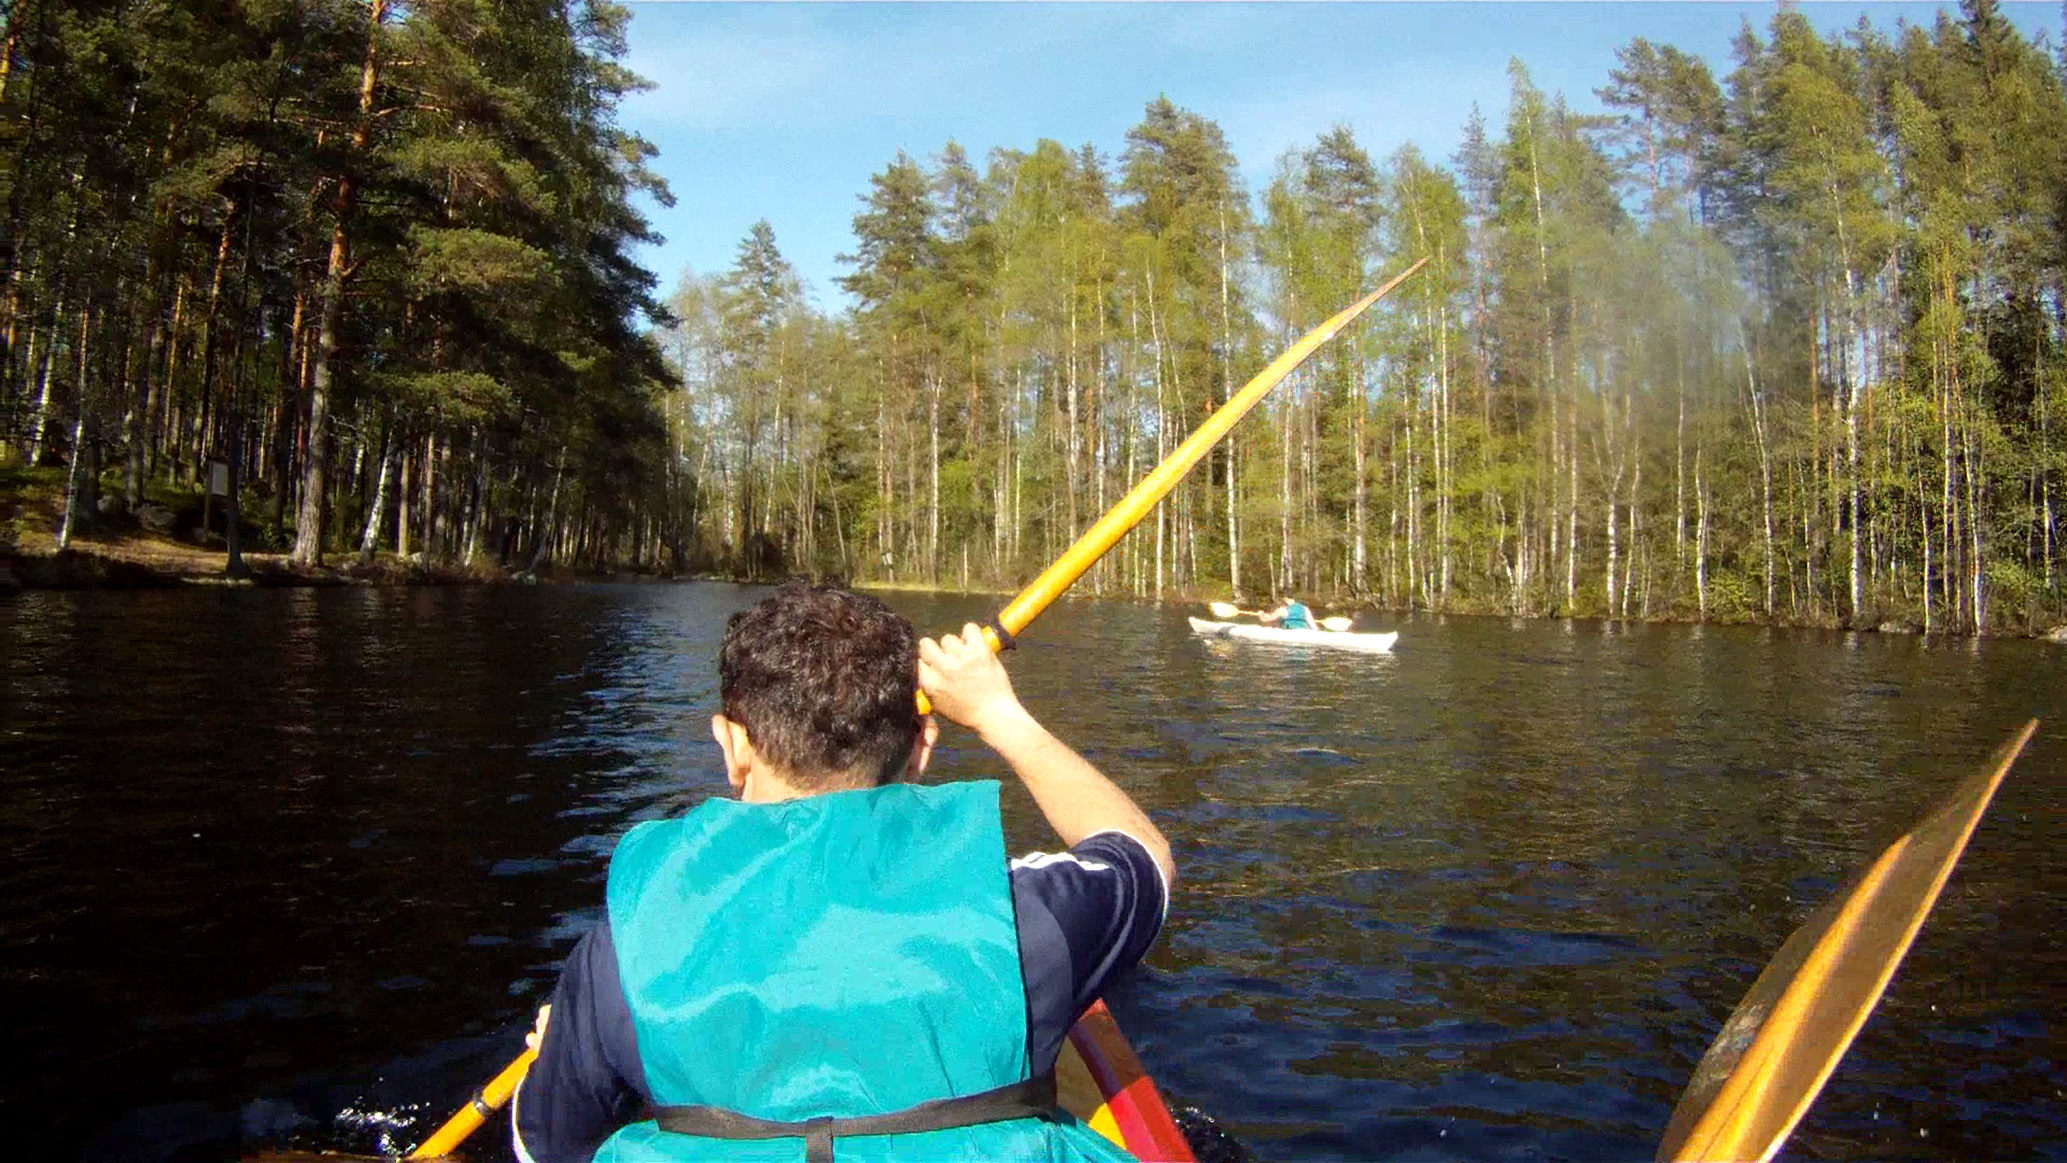 Canoeing route around the lakes Suomijärvi and Kuolimo